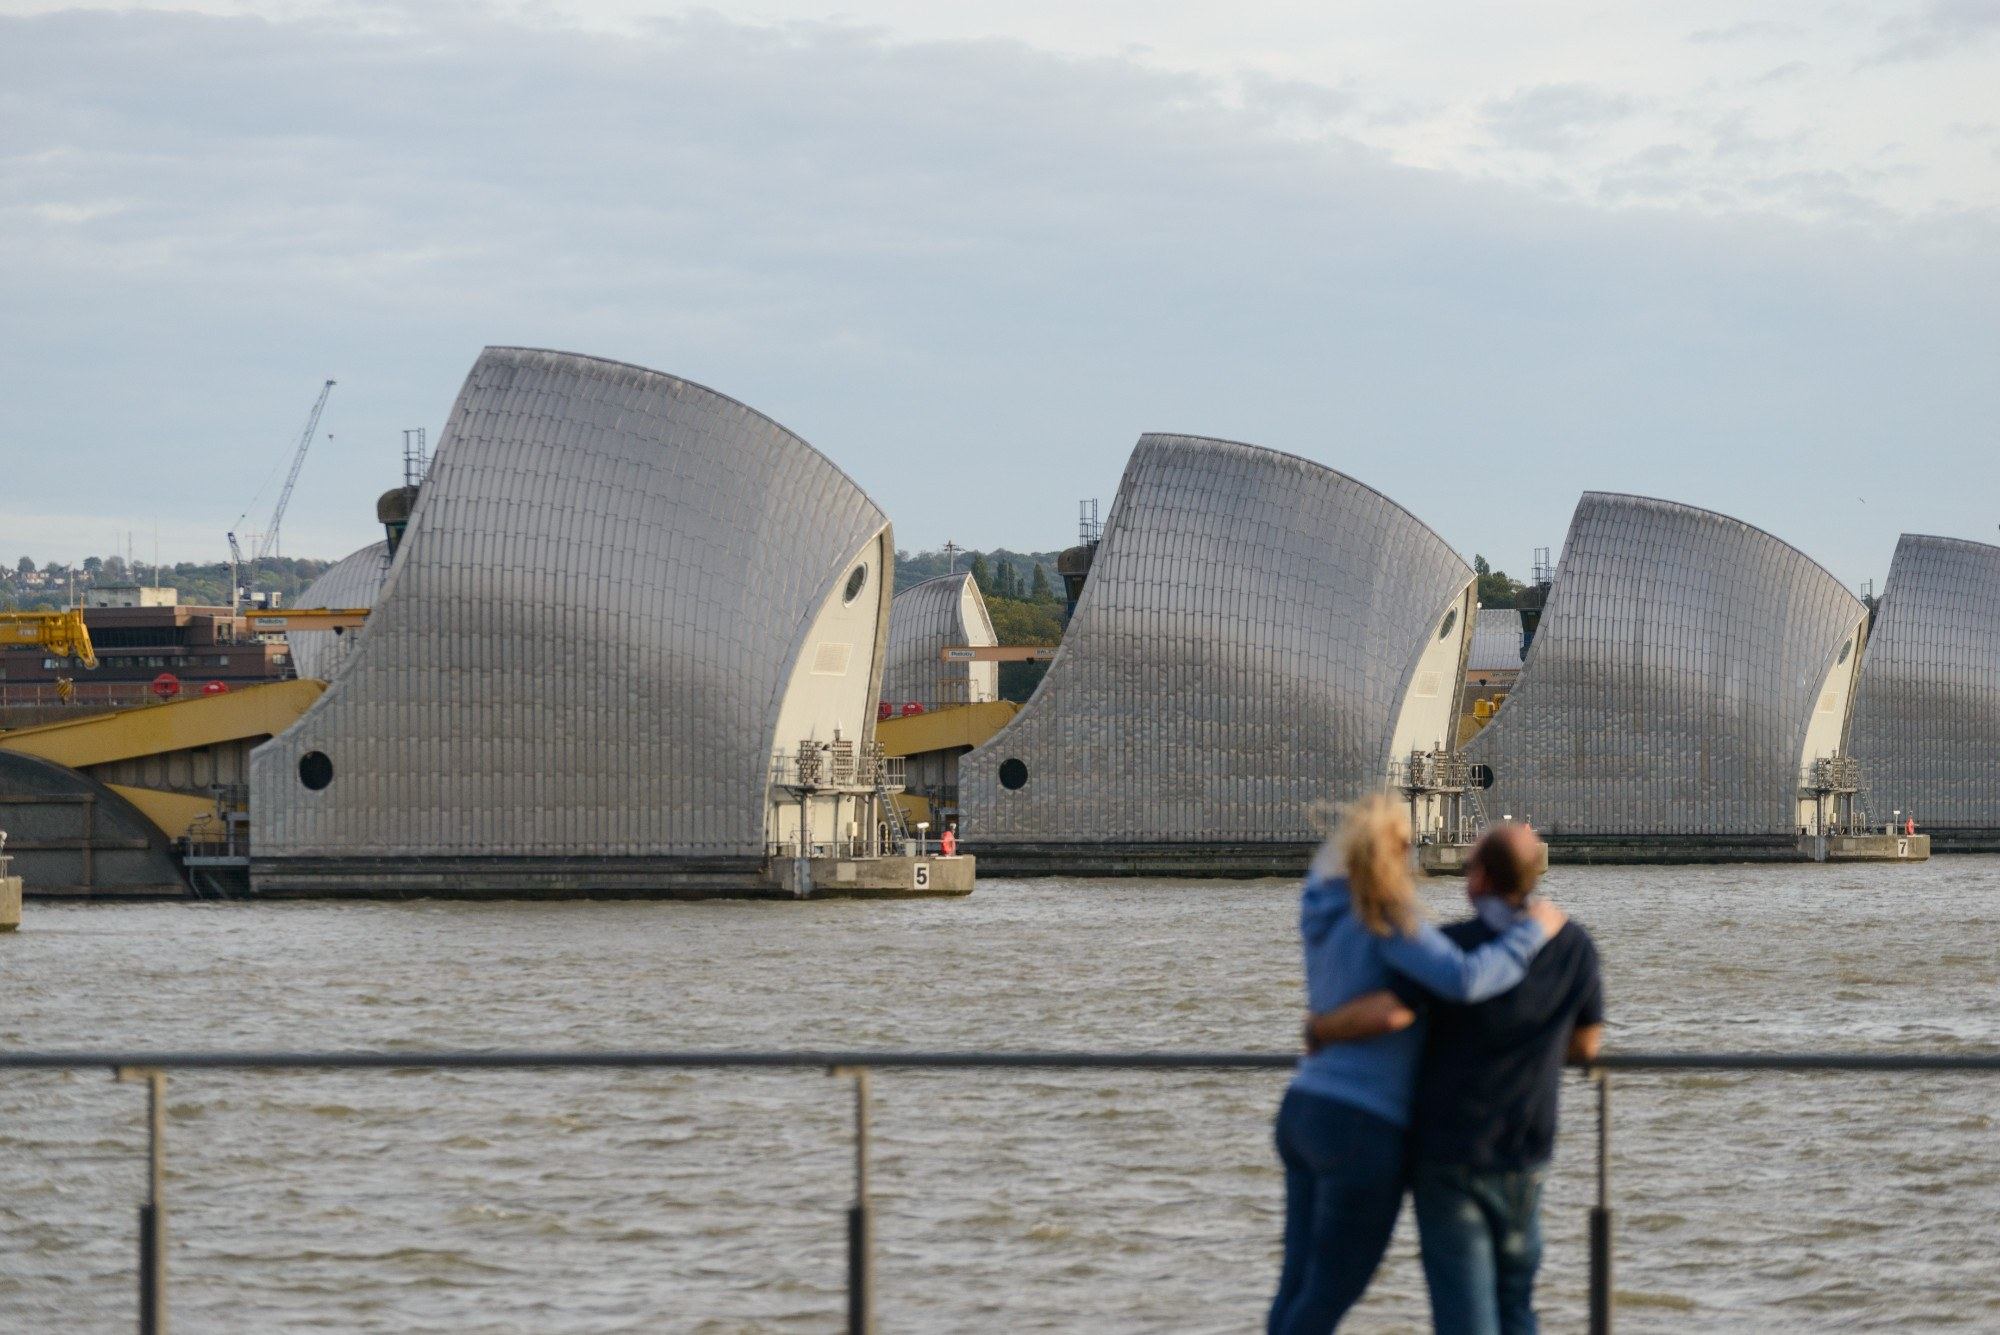 A photo of the Thames Barrier